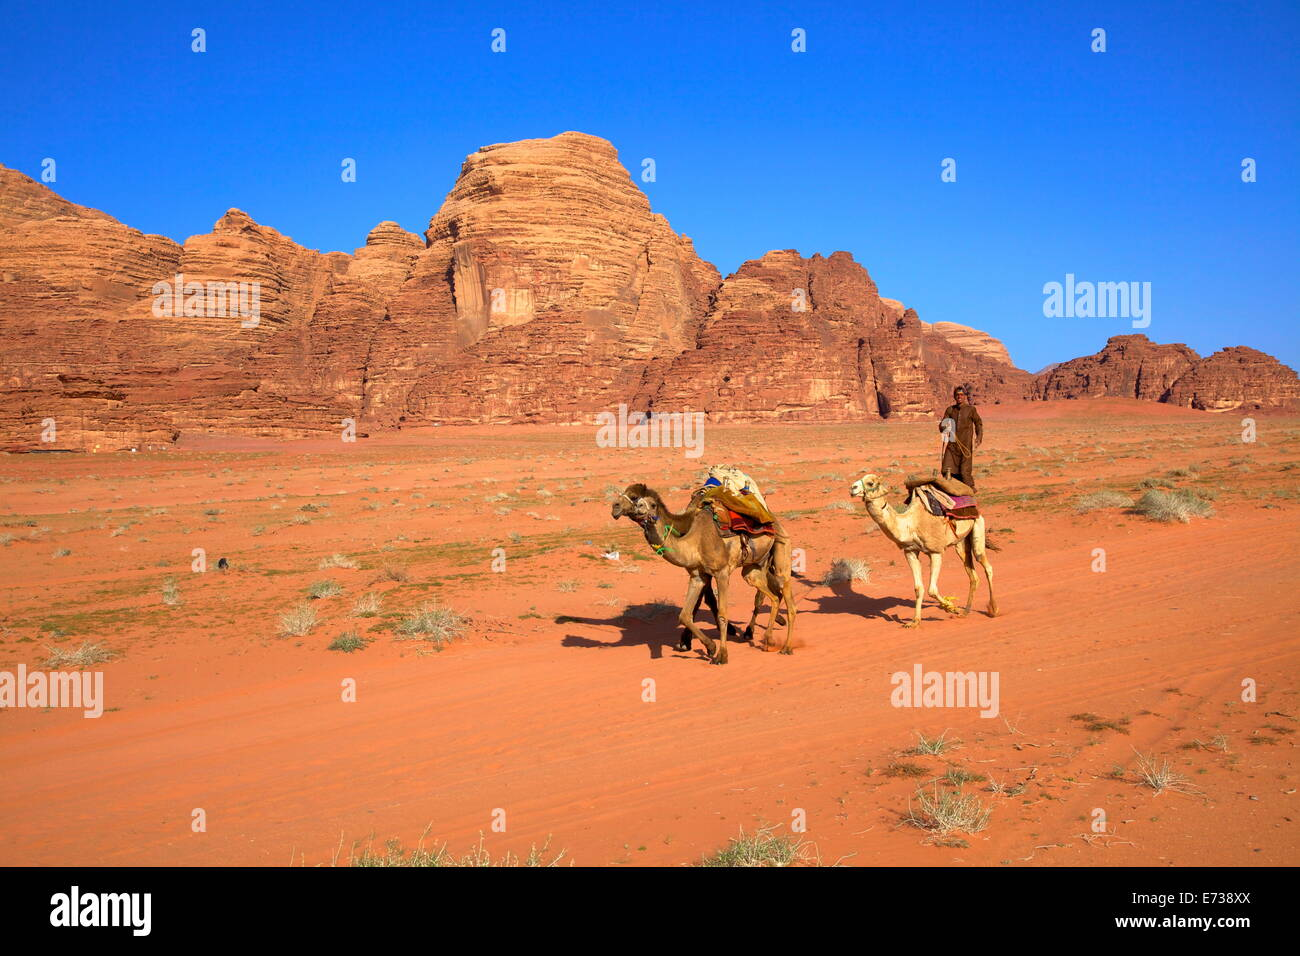 Bedouin and camels, Wadi Rum, Jordan, Middle East - Stock Image